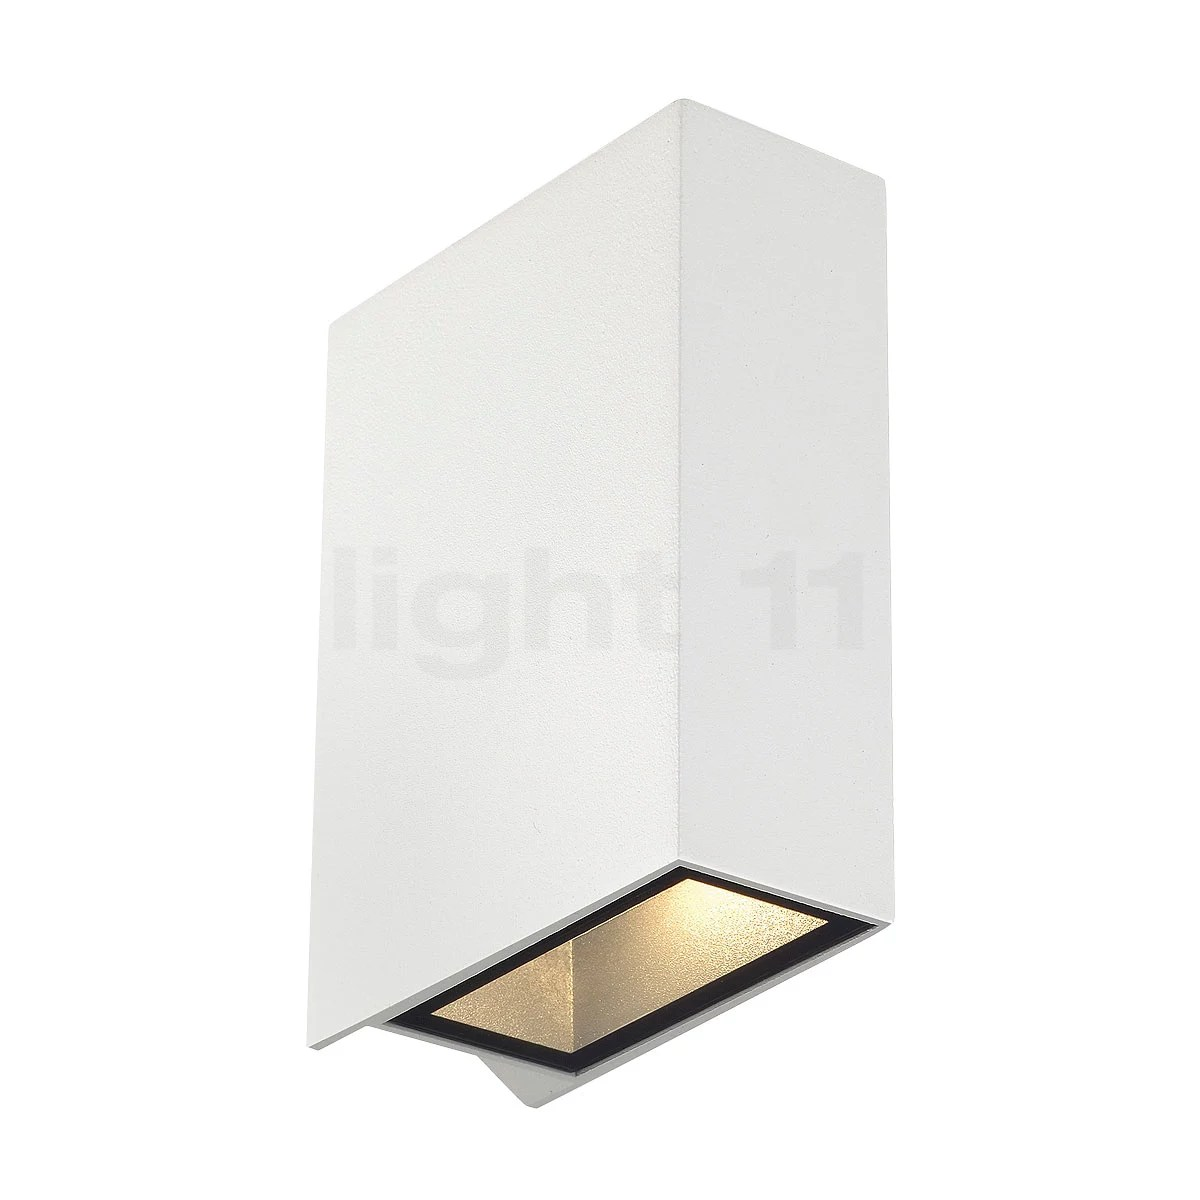 Applique Exterieur Slv Slv Quad 2 Applique Murale Angulaire Light11 Fr